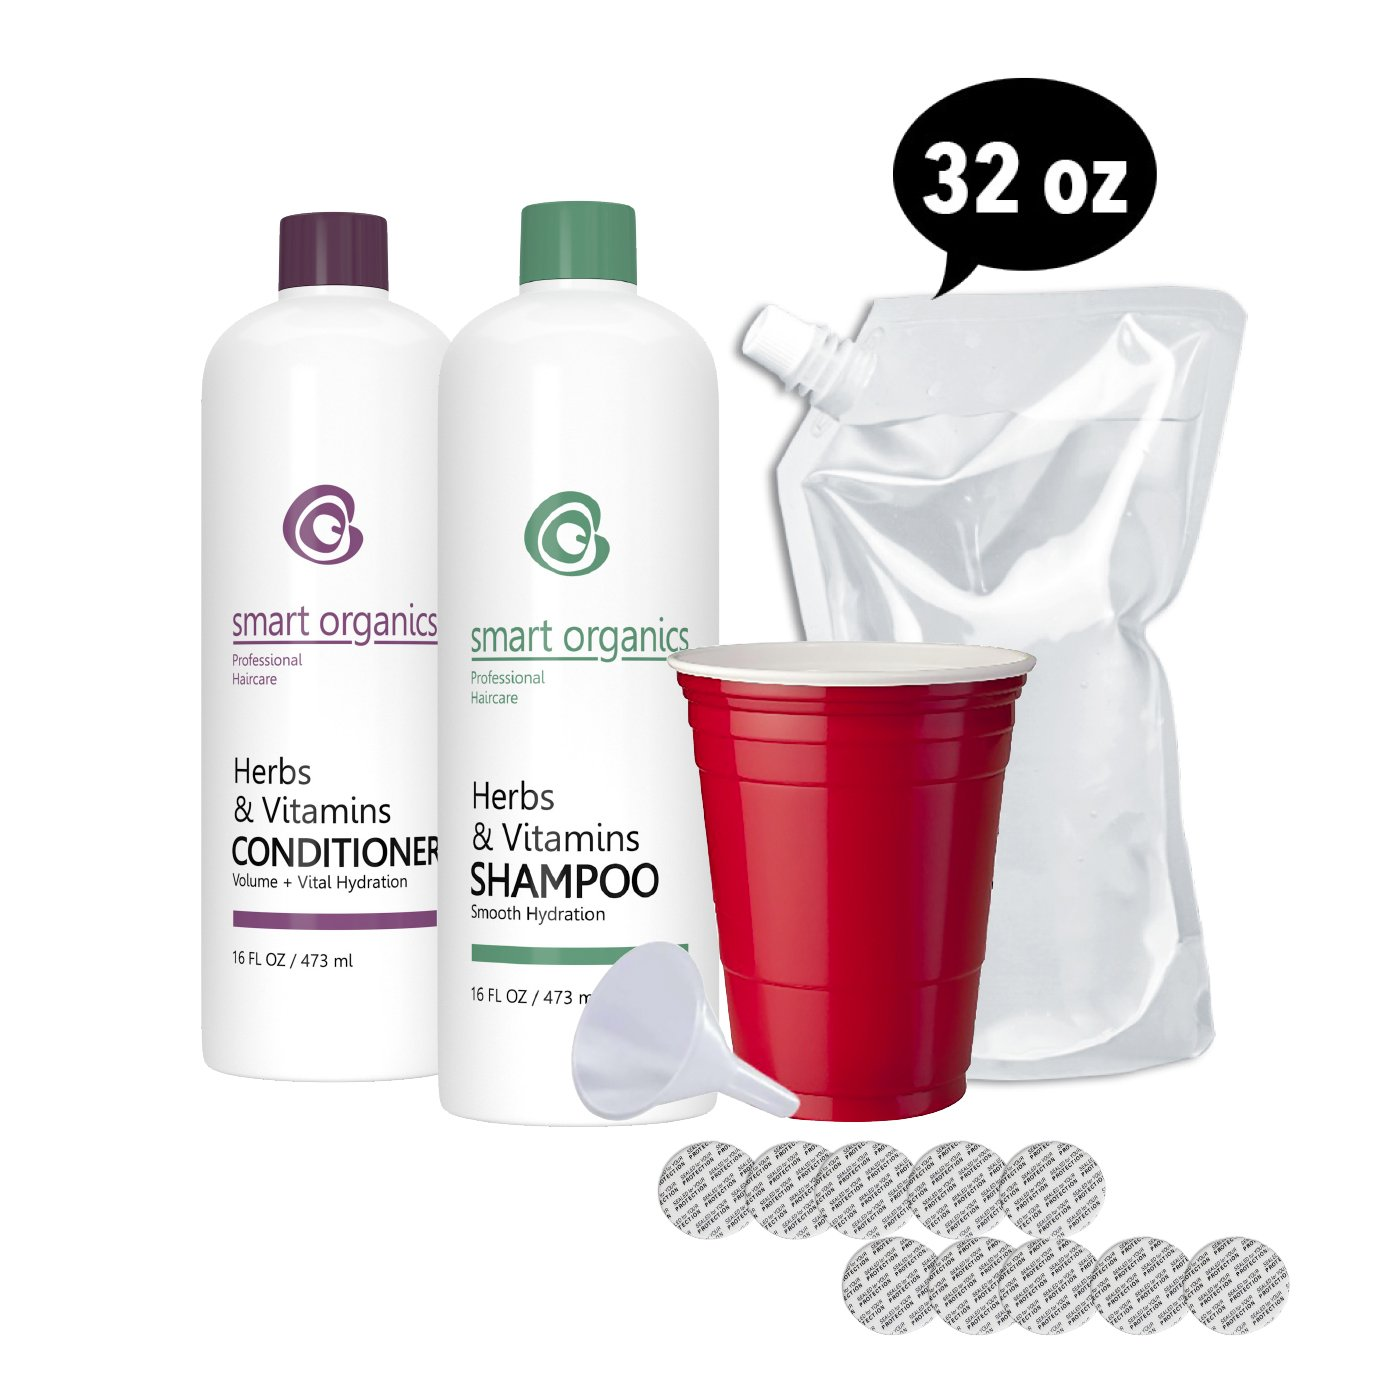 Hidden Flask - Shampoo and Conditioner Set - Includes 2 16 oz Bottles, Funnel, 10 Seals, and 1 Free 32 oz Cruise Flask - Sneak Alcohol Anywhere - Sporting Events, On a Cruise or Glass Restricted Areas by Cruise Flask®